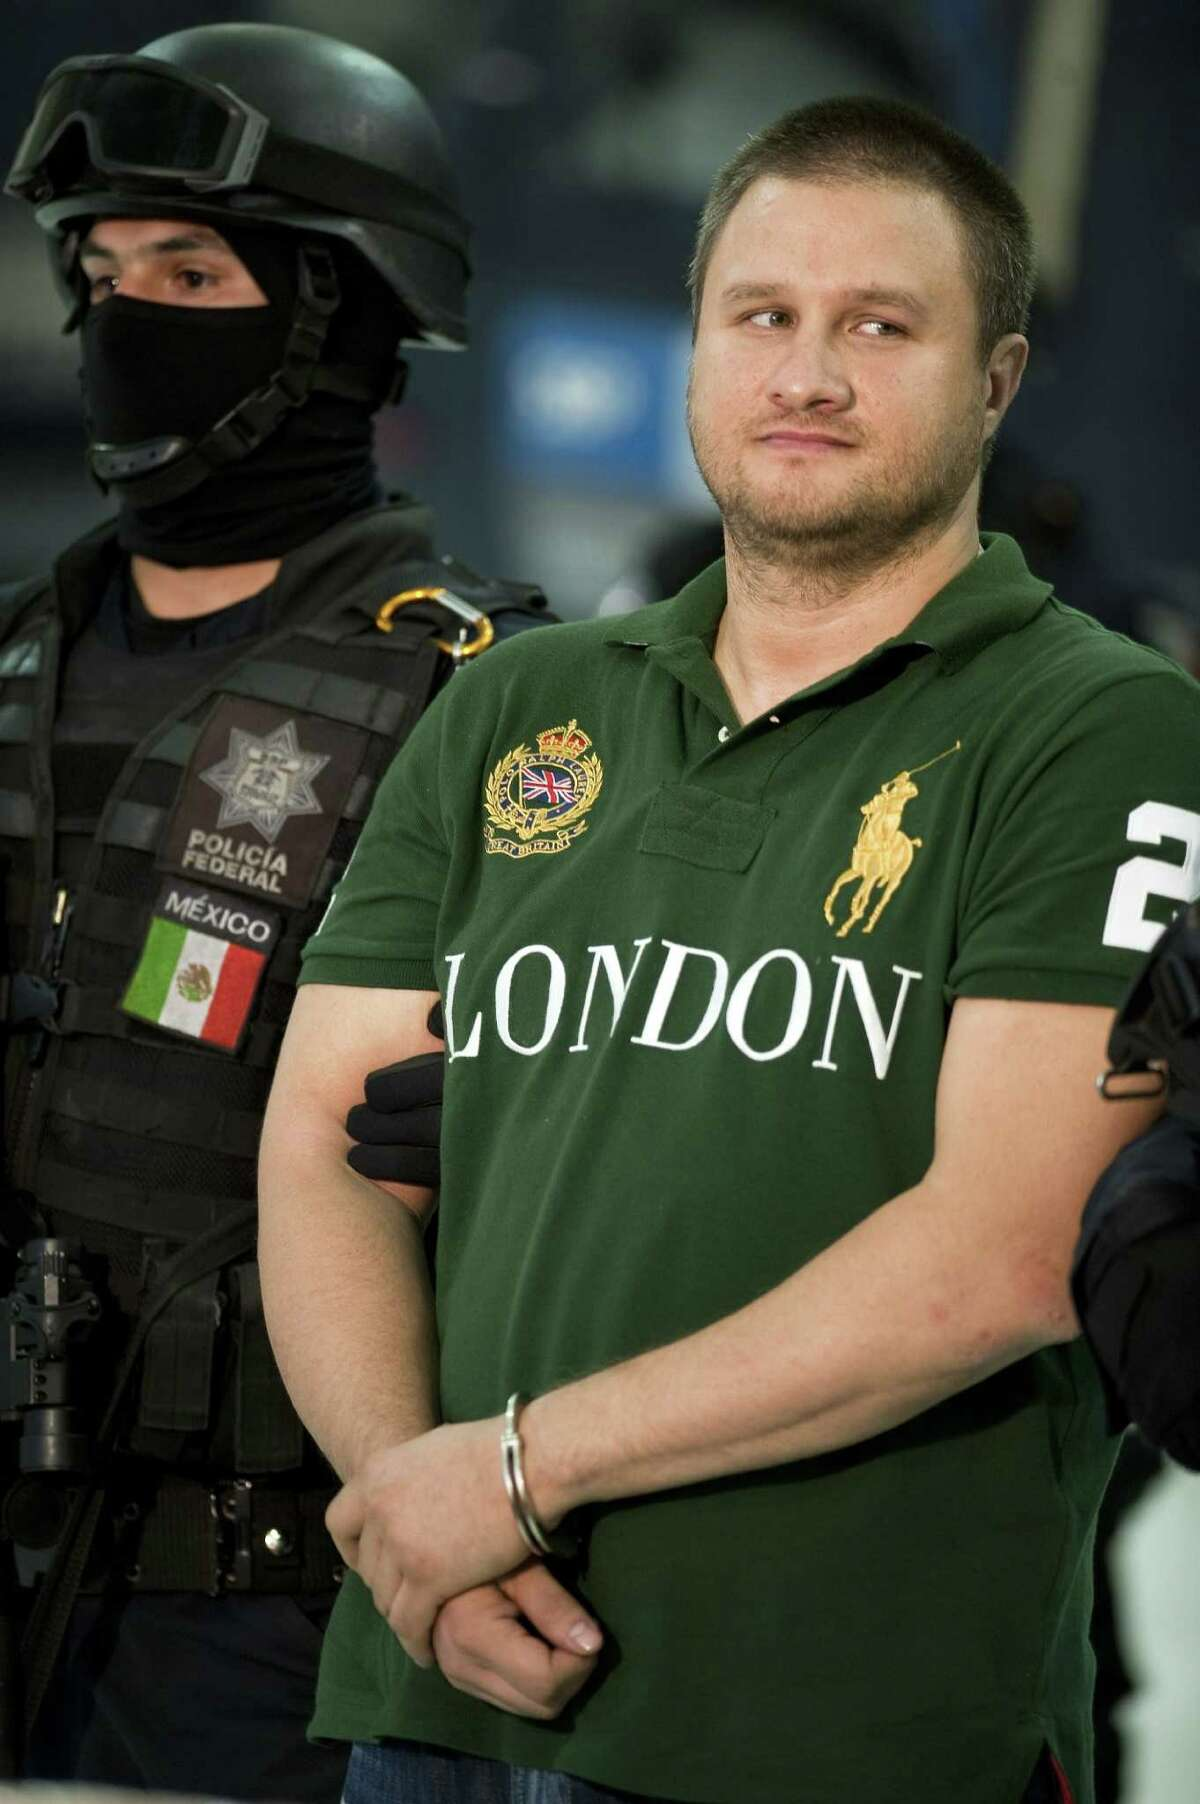 Edgar Valdez Villareal aka 'La Barbie' of the Beltran Leyva drug cartel, is presented to the press at the Federal Police headquarters in Mexico City, on August 31, 2010. Mexican authorities on Monday announced the capture of one of the country's most sought after drug kingpins, US-born Valdez Villarreal, known as 'the Barbie' for his fair complexion. Valdez was detained in a police operation in central Mexico, following intelligence work which began in June 2009. The 37-year-old was a key lieutenant of Arturo Beltran Leyva, who headed the cartel that bears his name and was Mexico's third most-wanted man until his December 2009 death in a military operation. AFP PHOTO/Alfredo Estrella